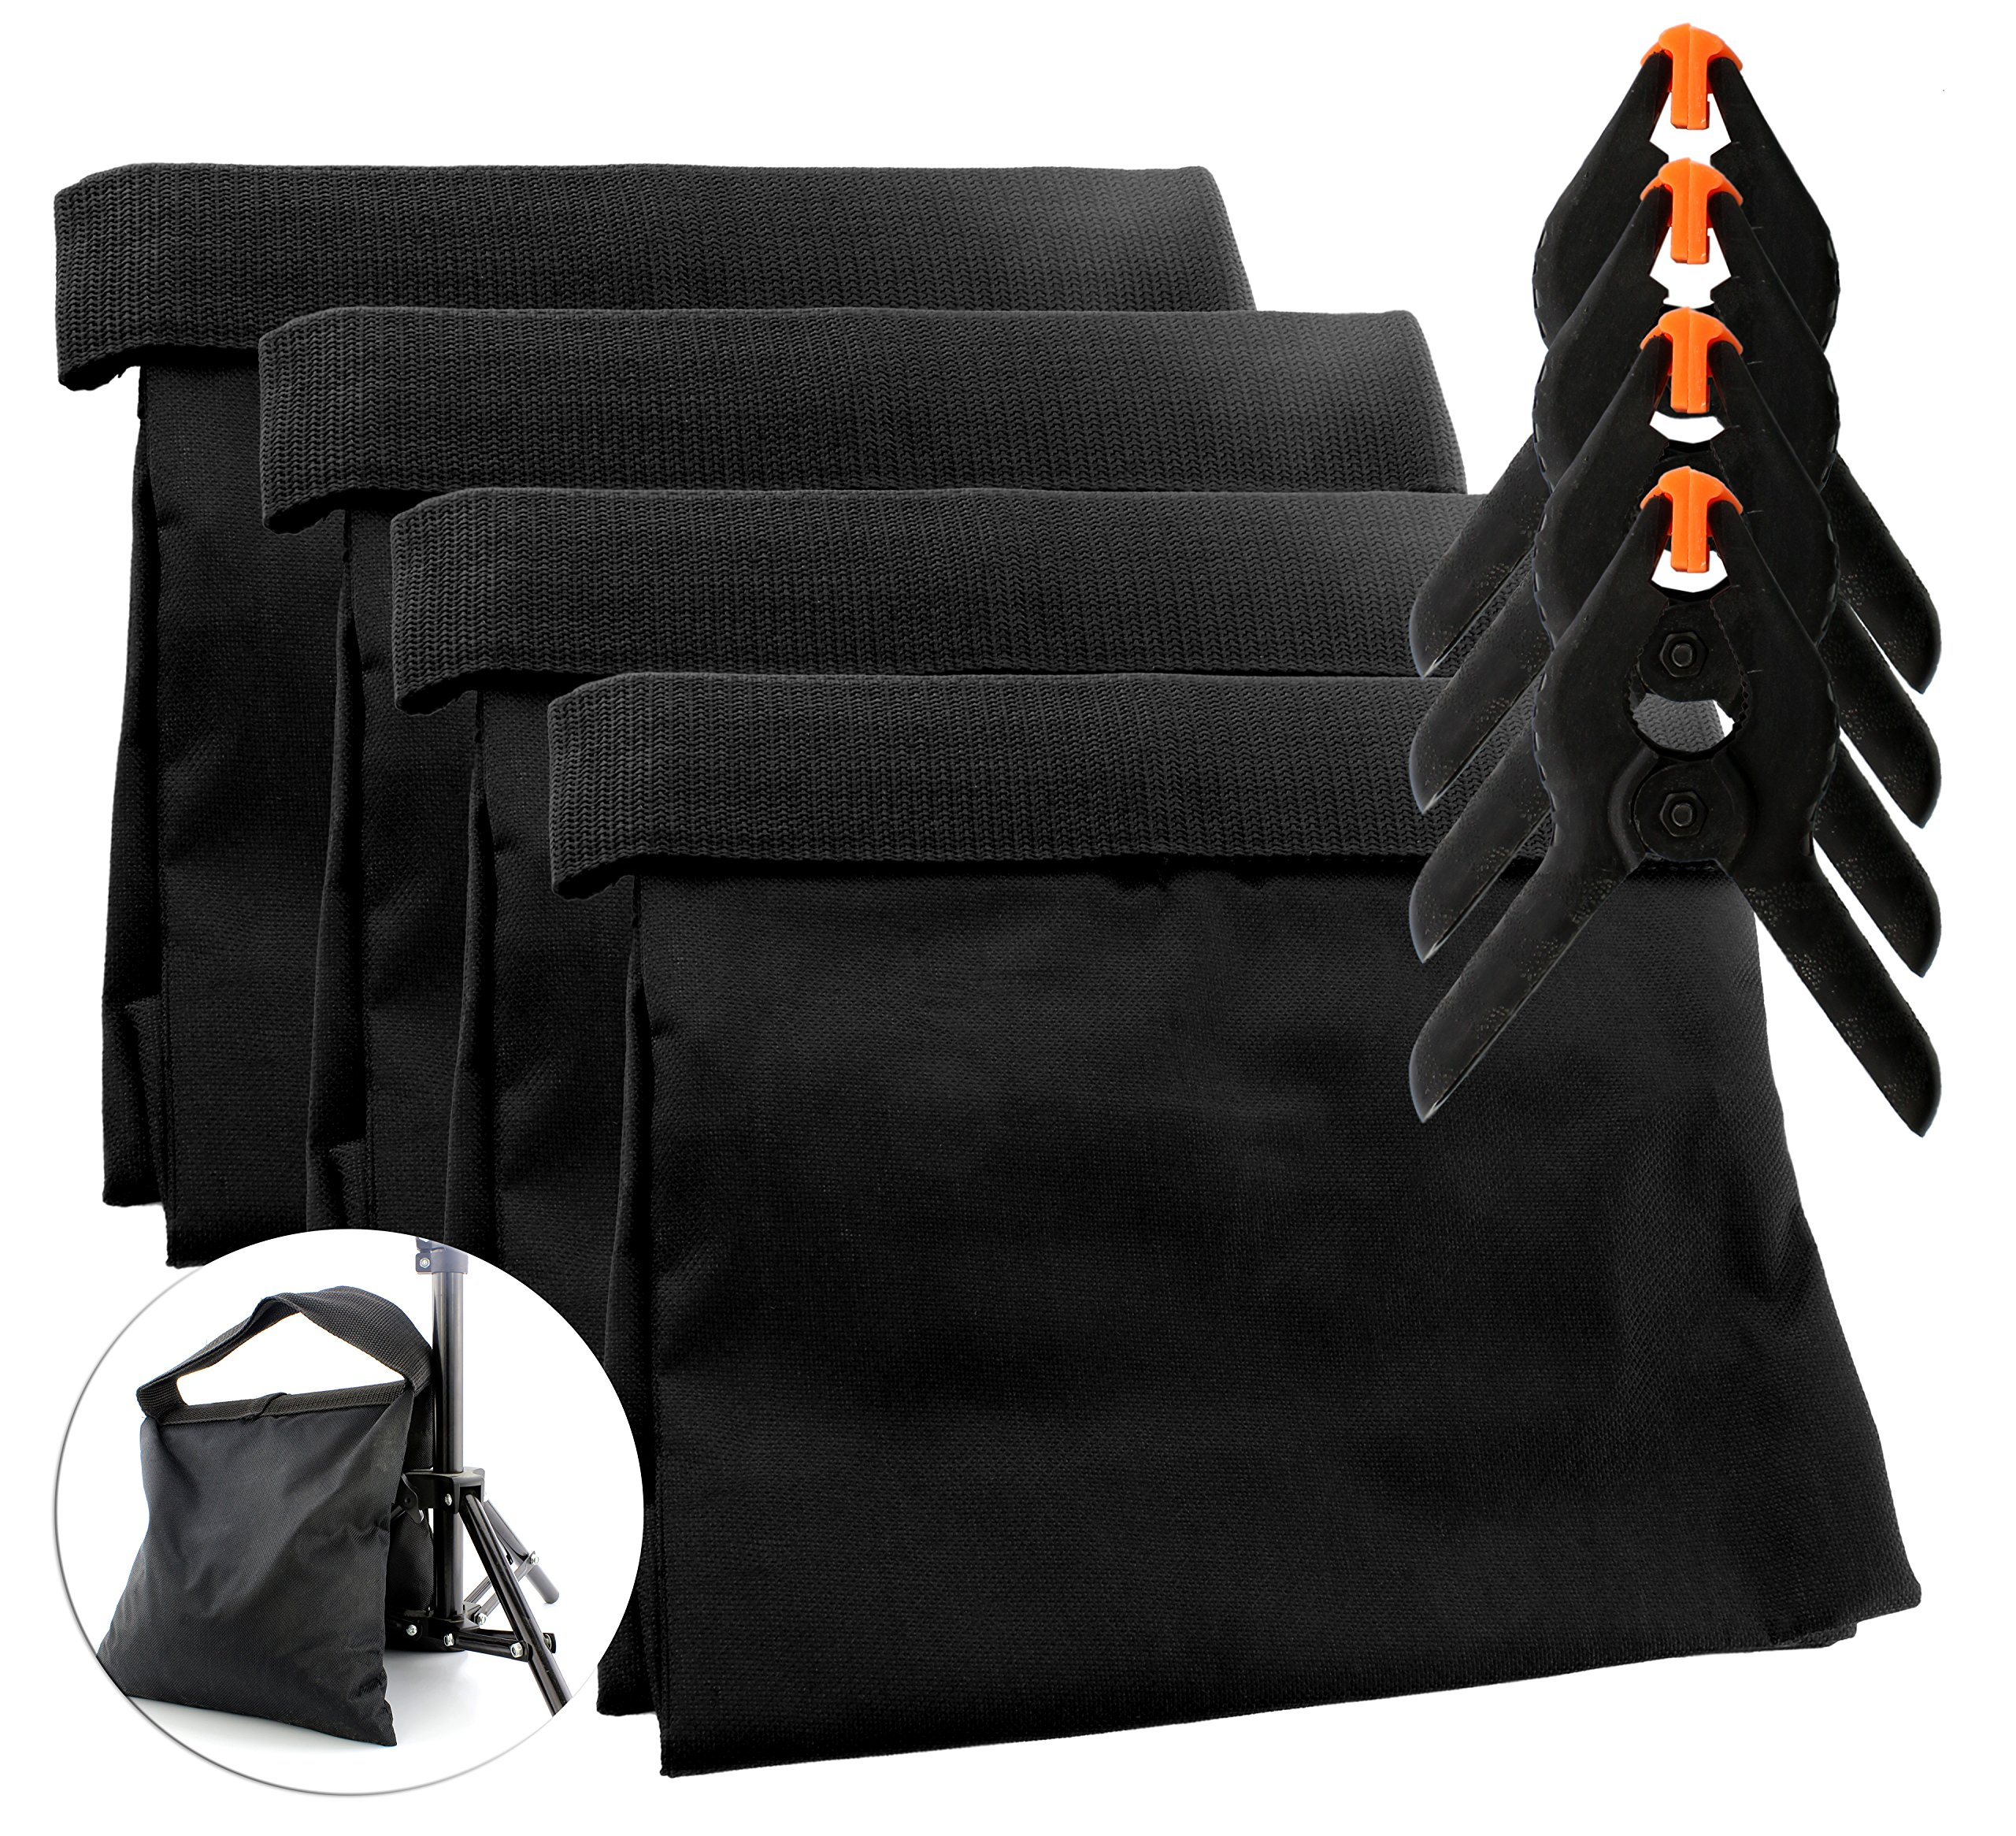 8-Piece Set Photography Sand Bags w/Clips (4 Bags, 4 Clips); Saddlebag Design Sandbags for Photo Studio Video Light Stands (Black, 4-Pack) by Cornucopia Brands